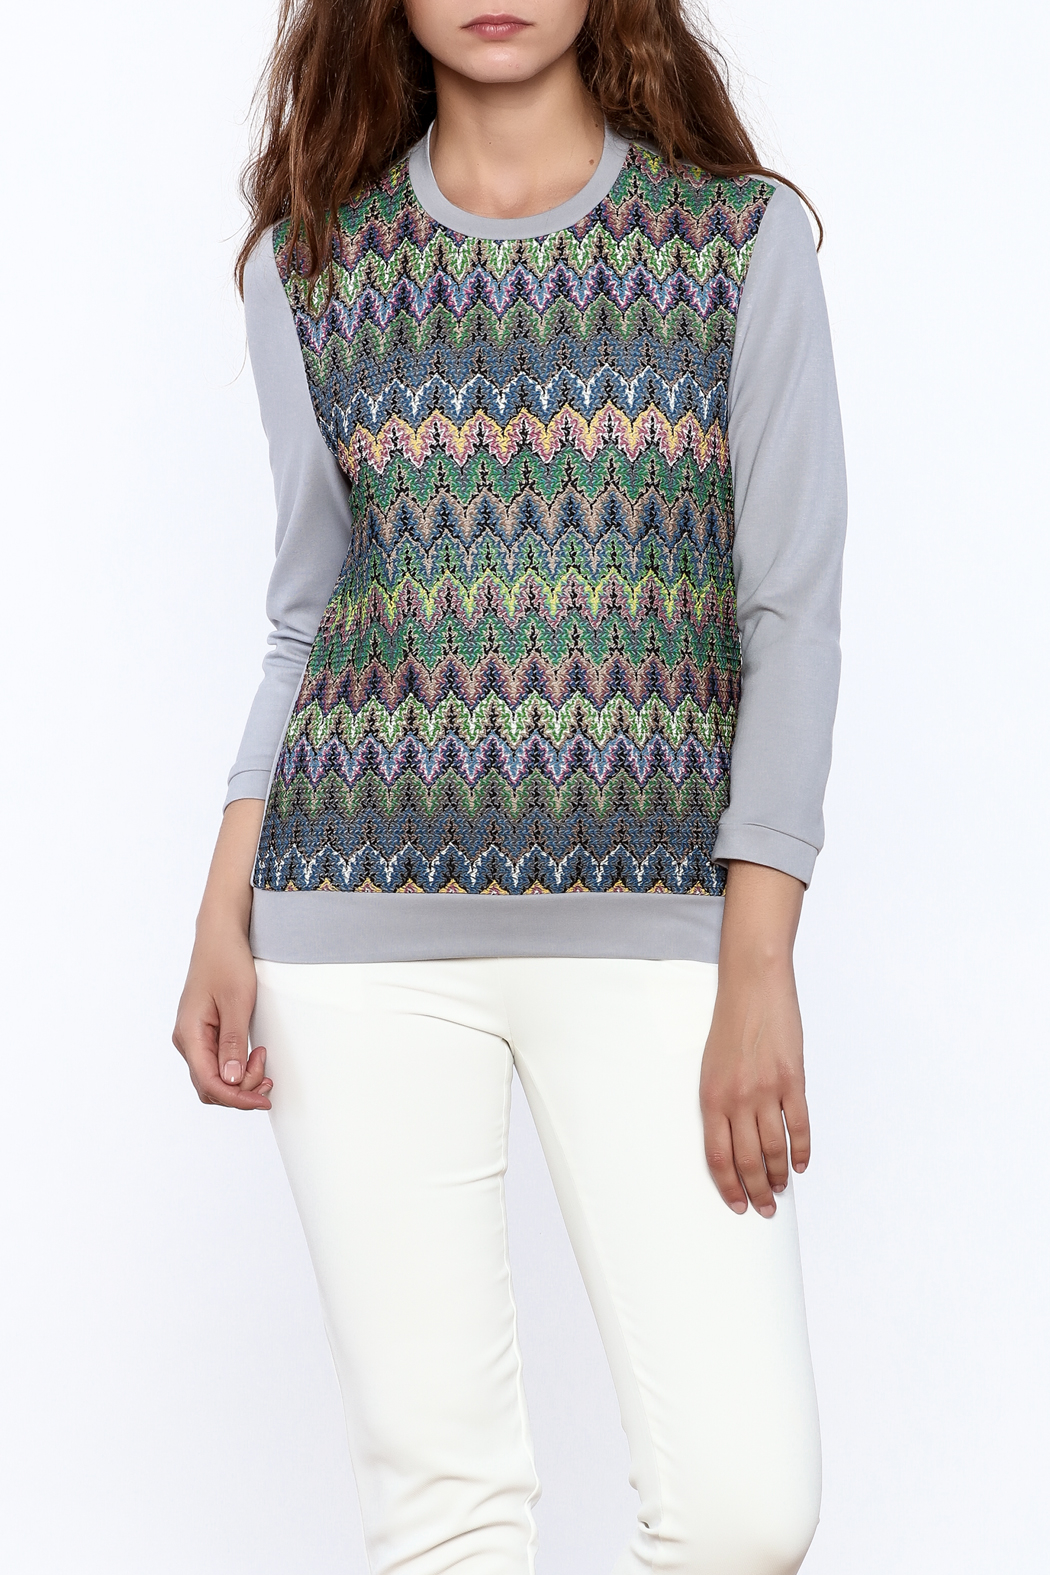 motek Grey Printed Top - Main Image